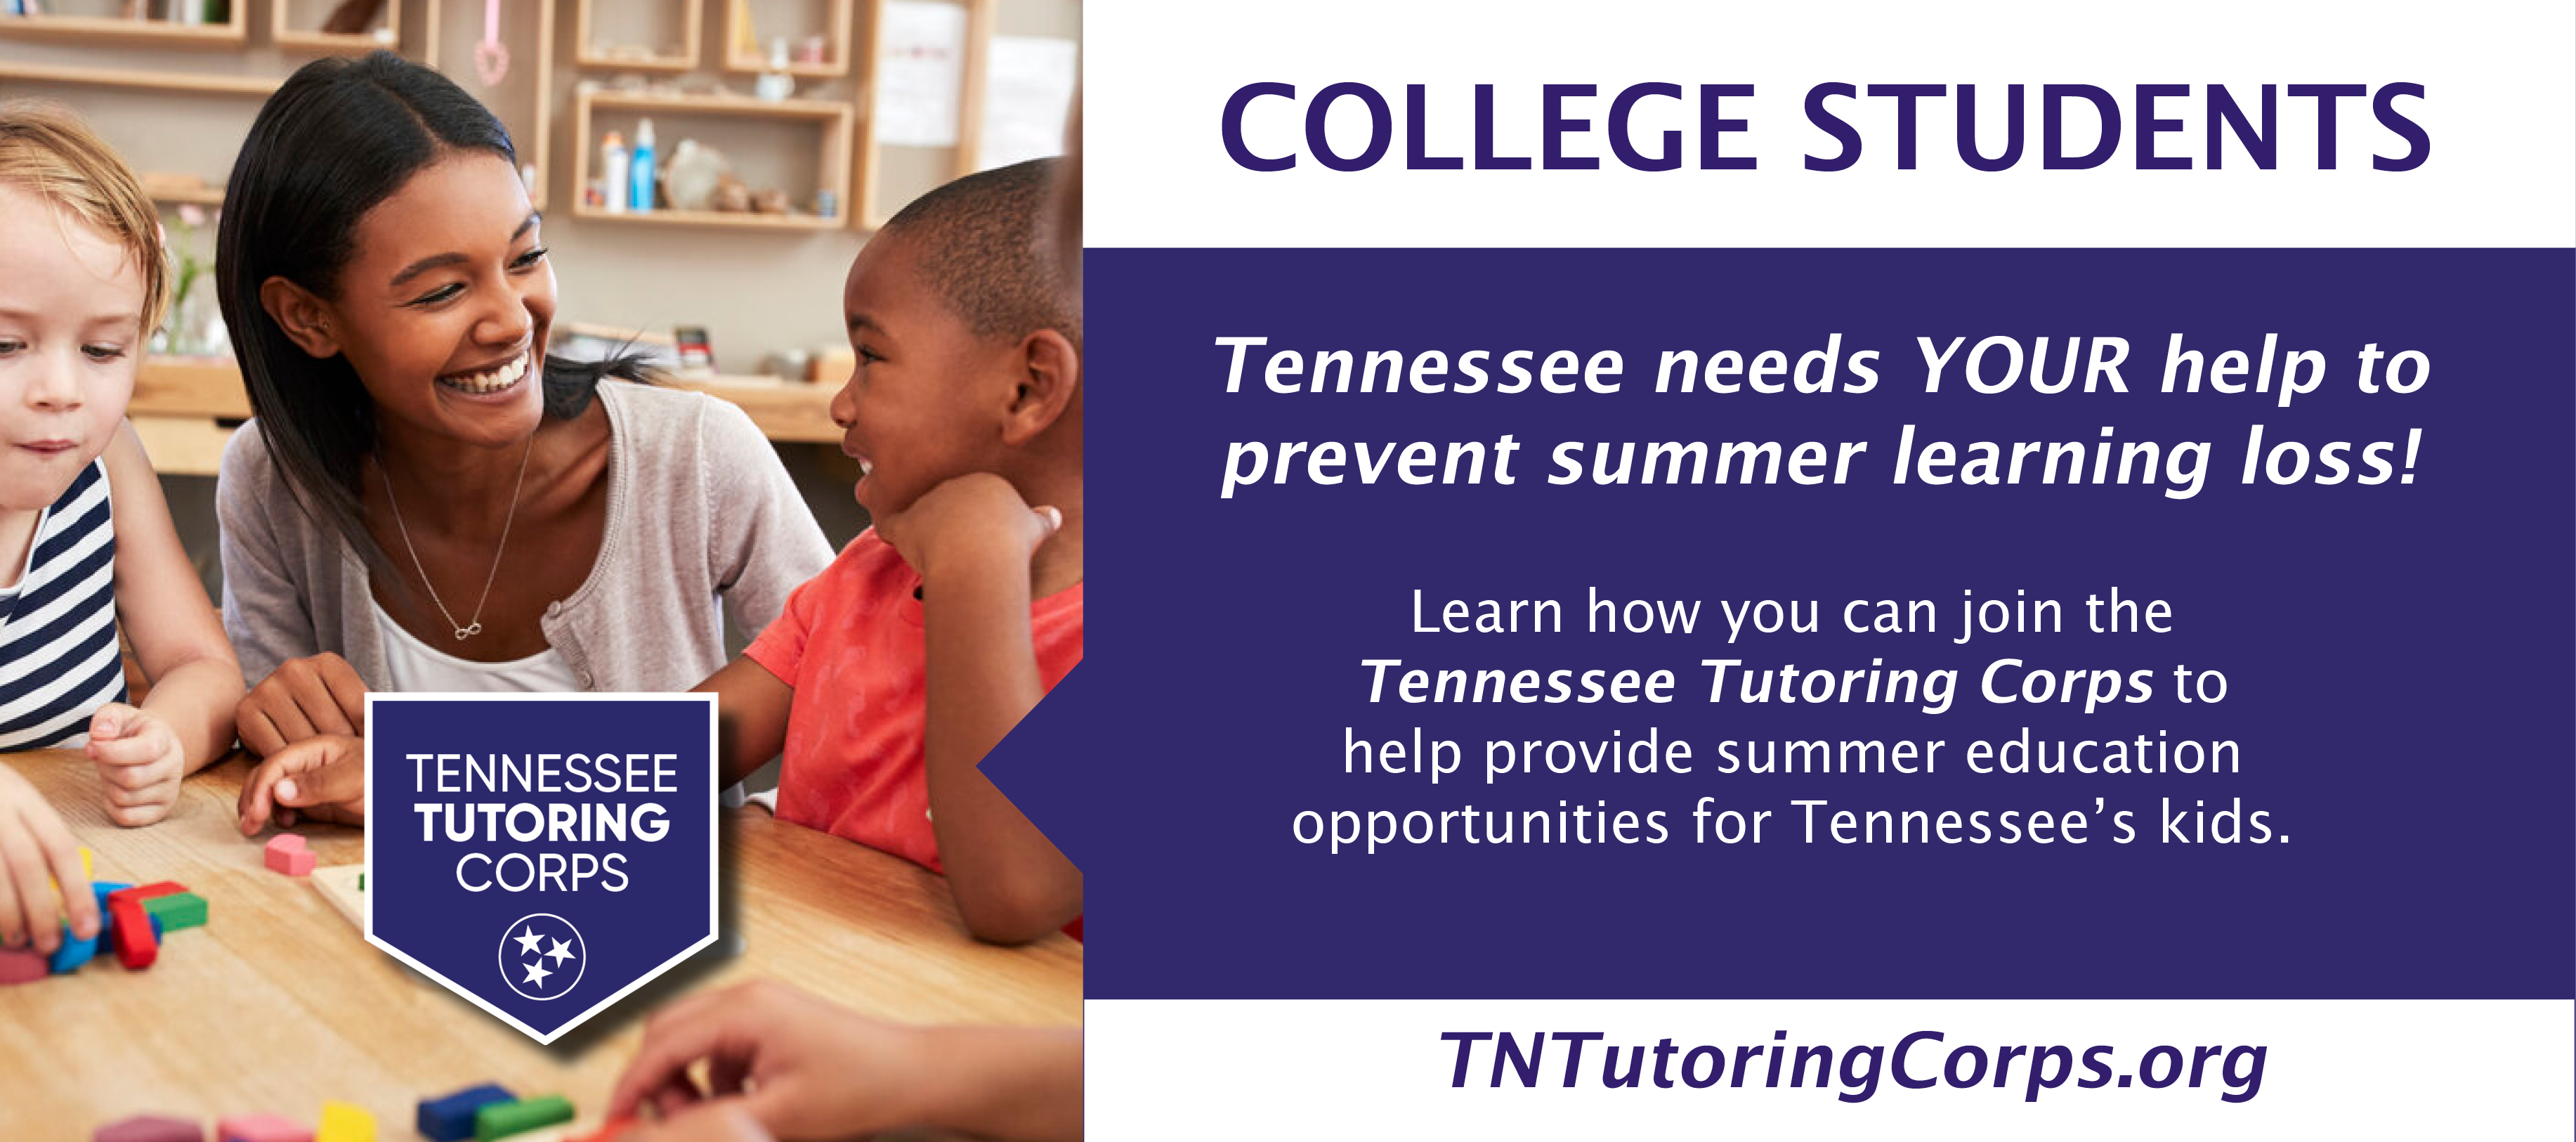 Tennessee Tutoring Corps Application